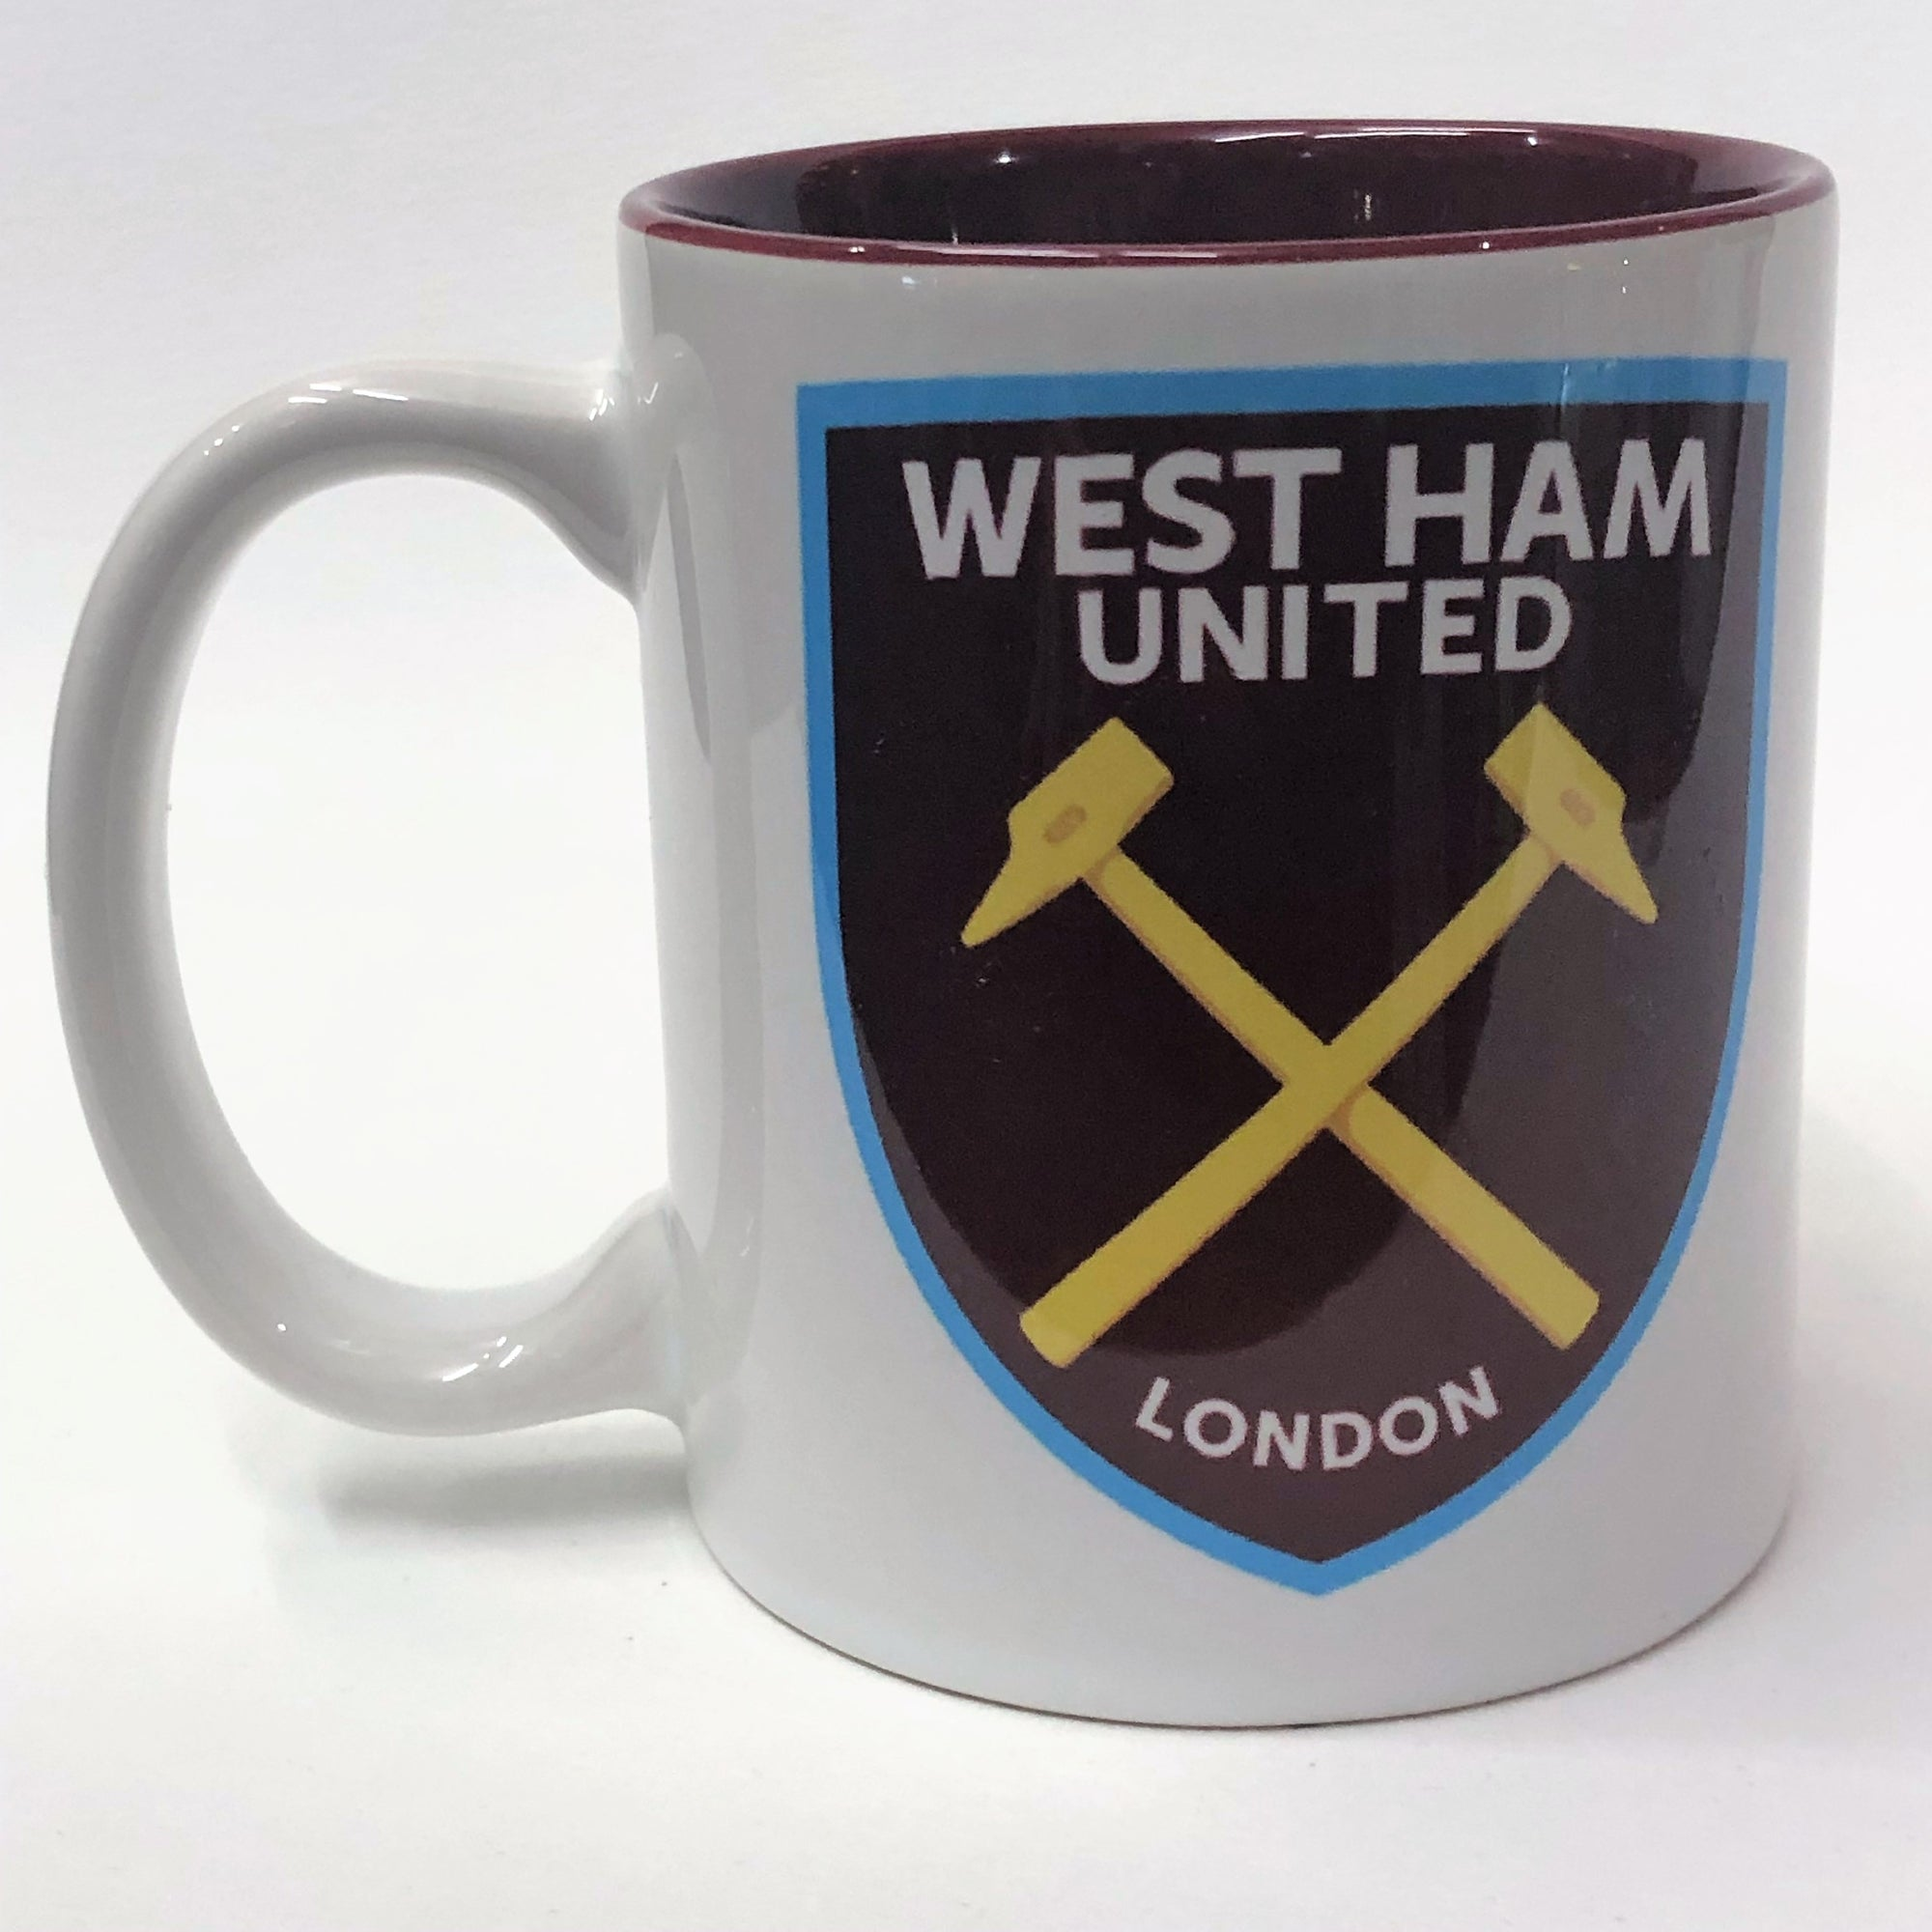 West Ham United Coffee Mug